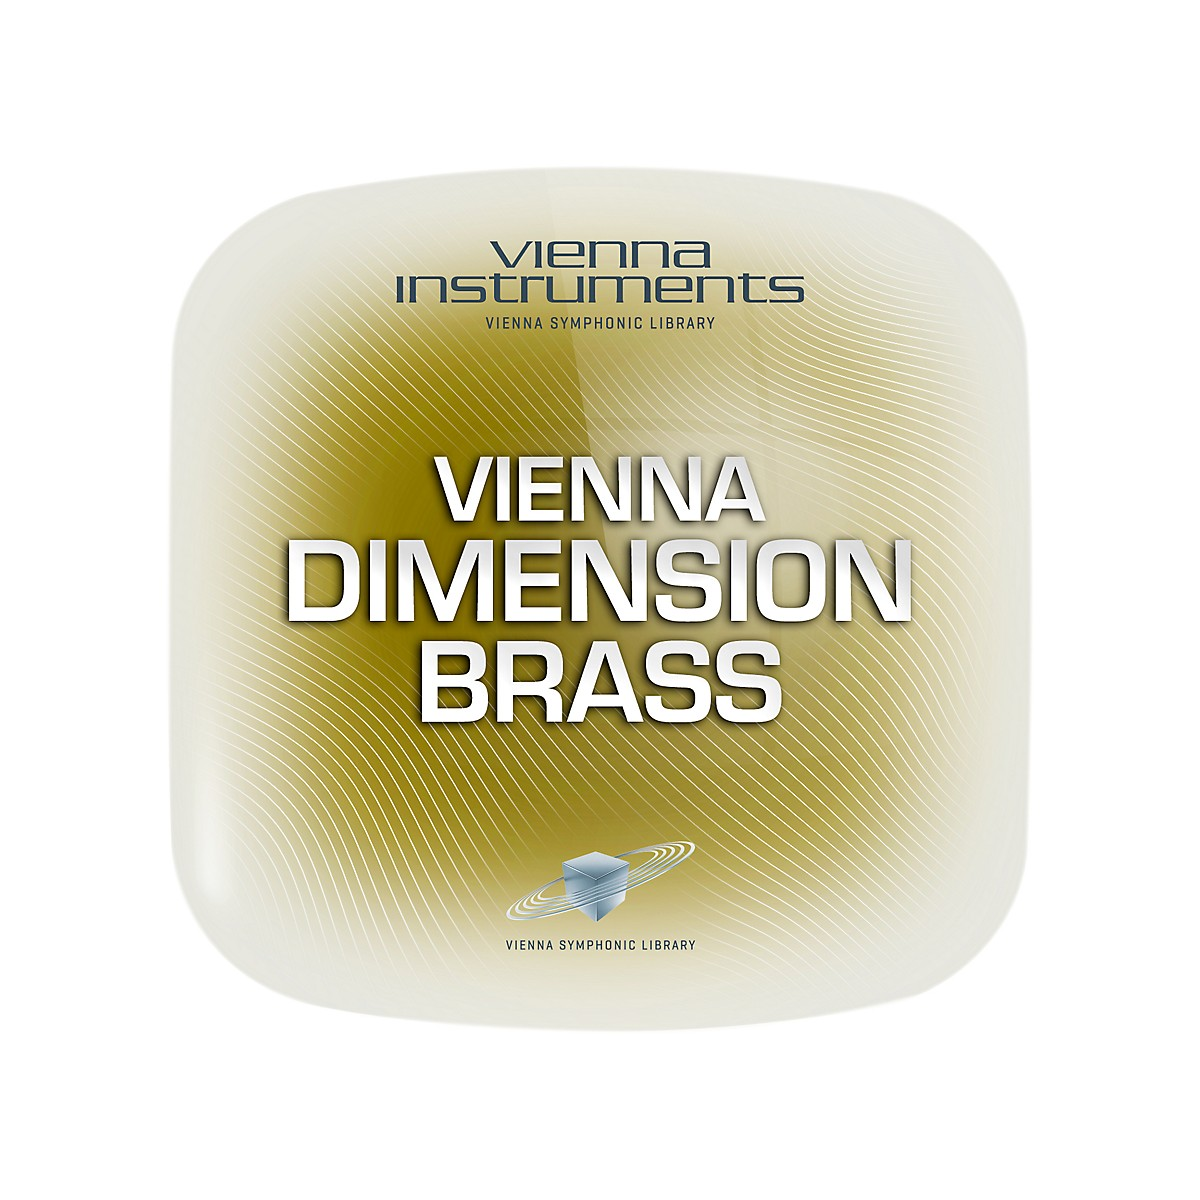 Vienna Instruments Vienna Dimension Brass Software Download